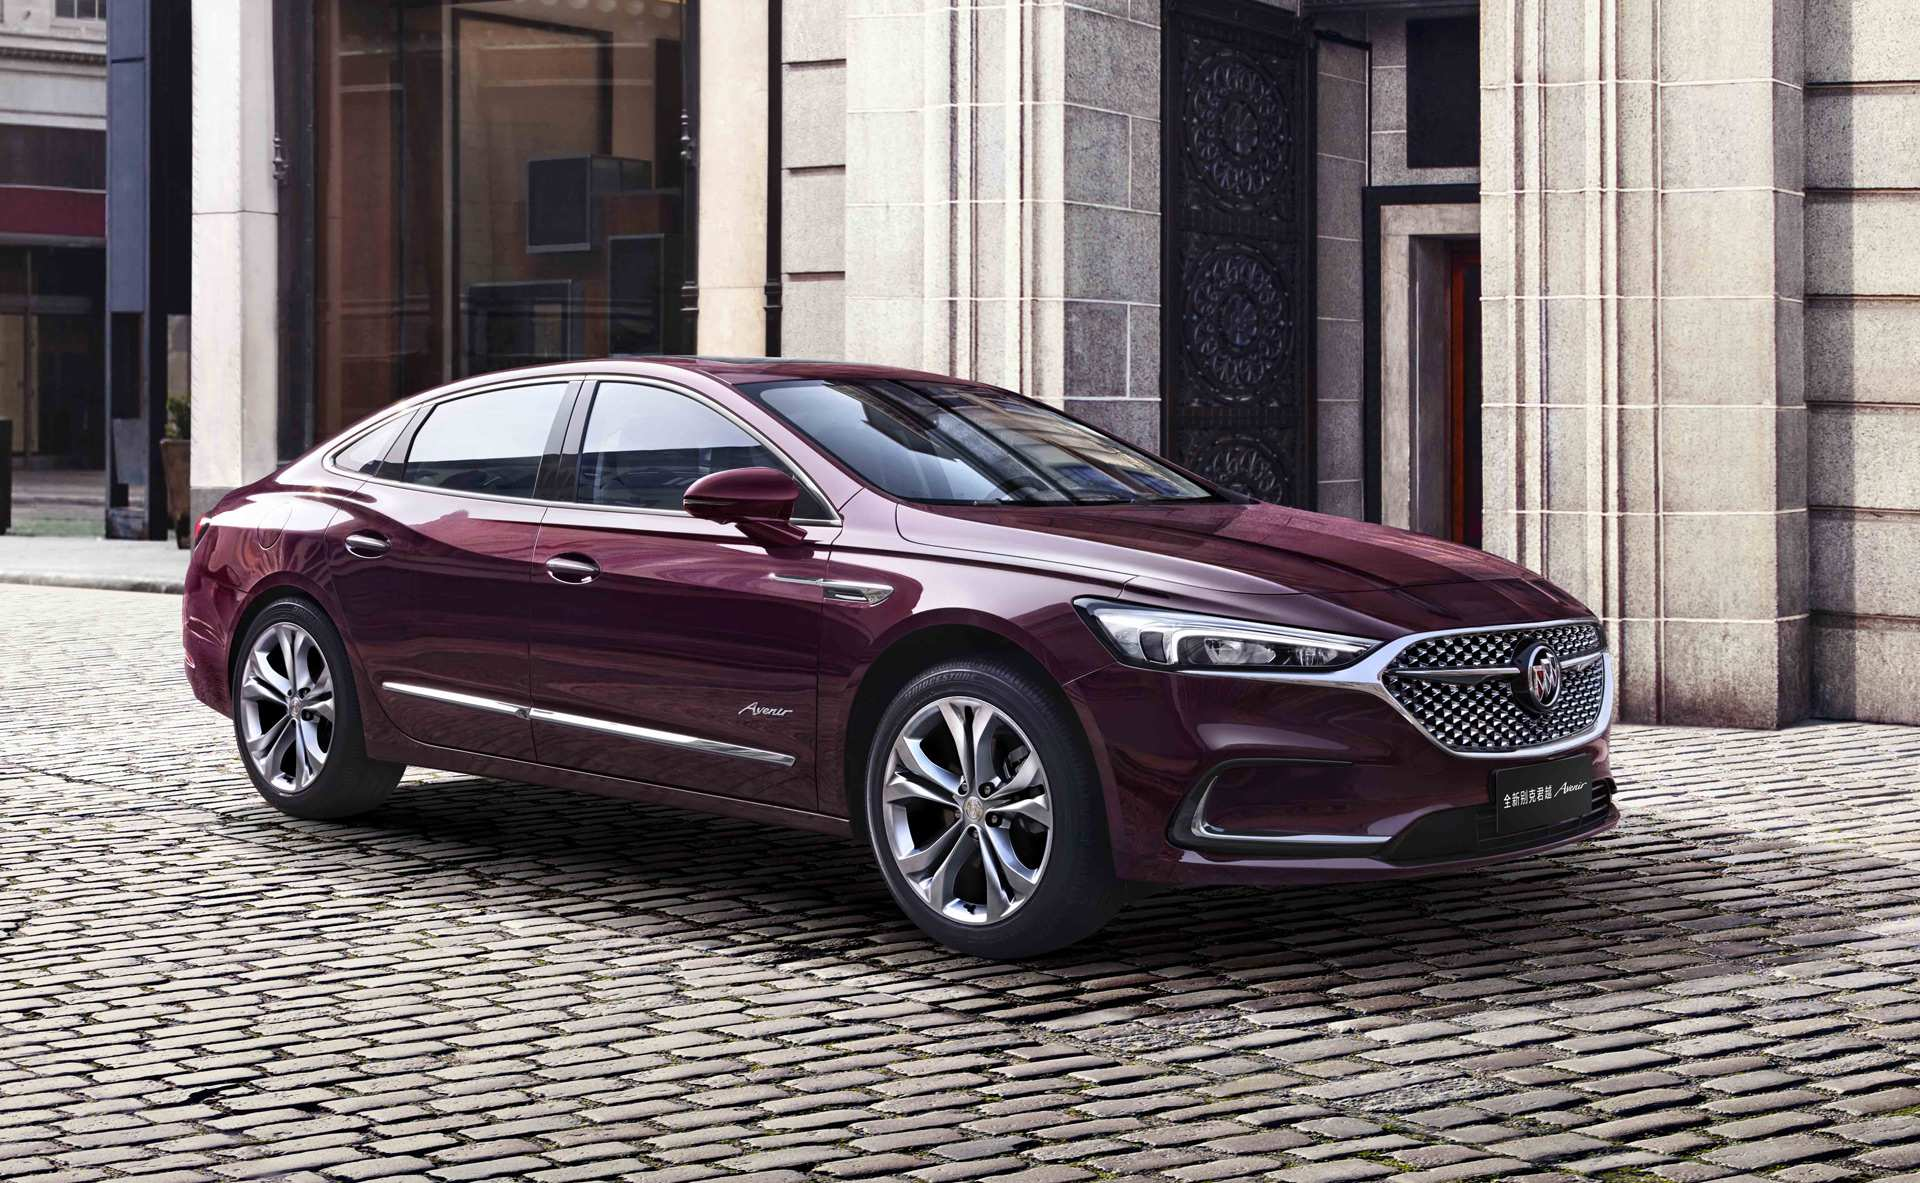 79 Best Review 2020 Buick Lacrosse China Model for 2020 Buick Lacrosse China